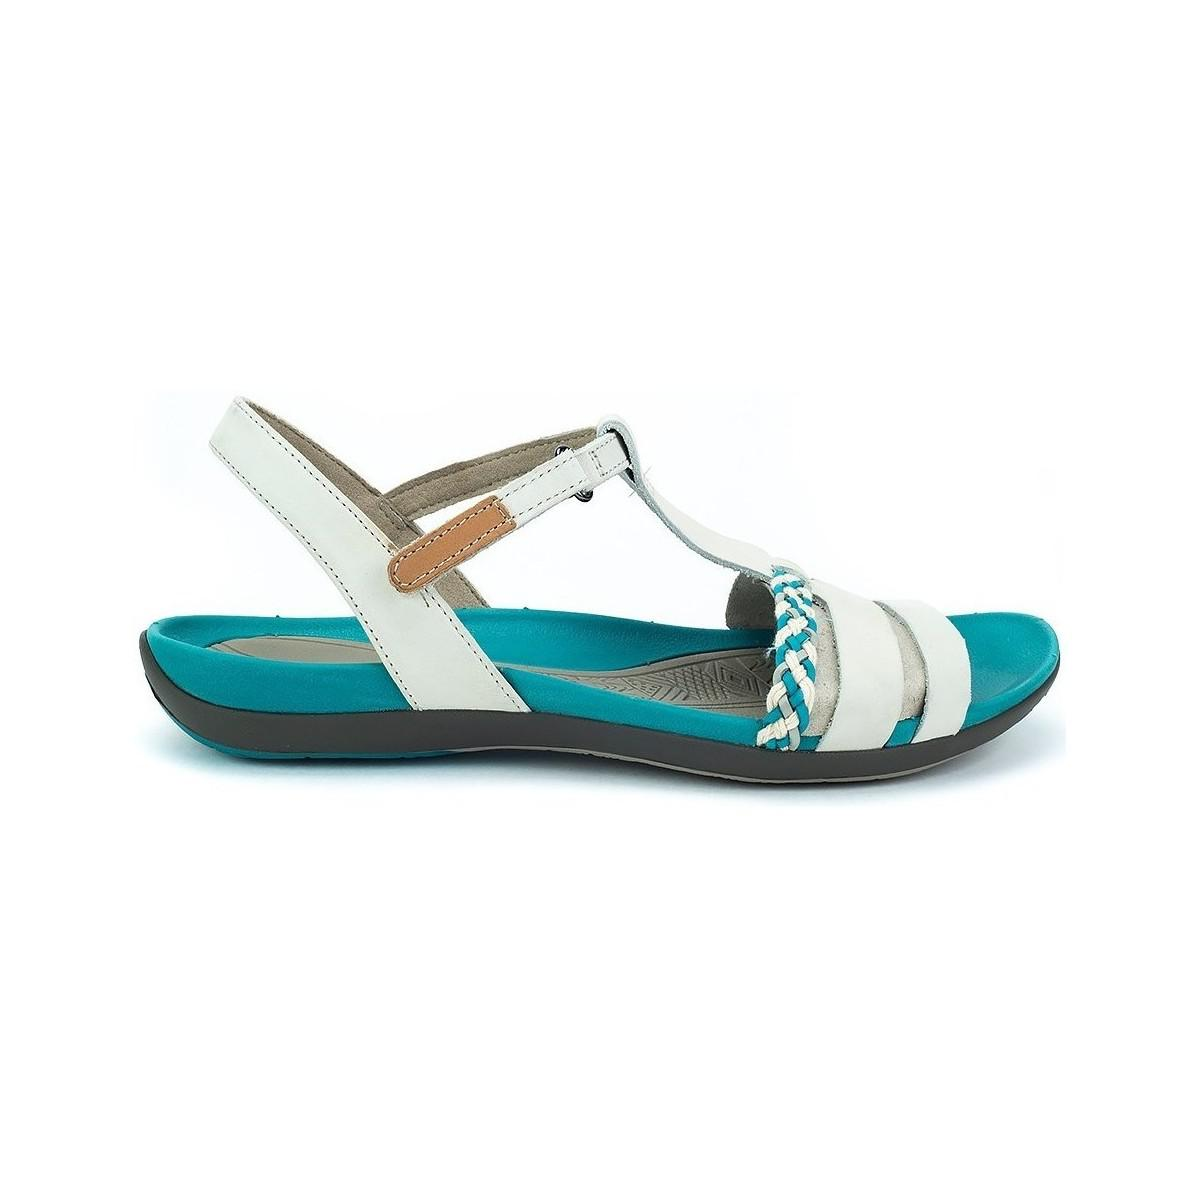 ee6f4a0a219c Clarks Tealite Grace Women s Sandals In White in White - Lyst